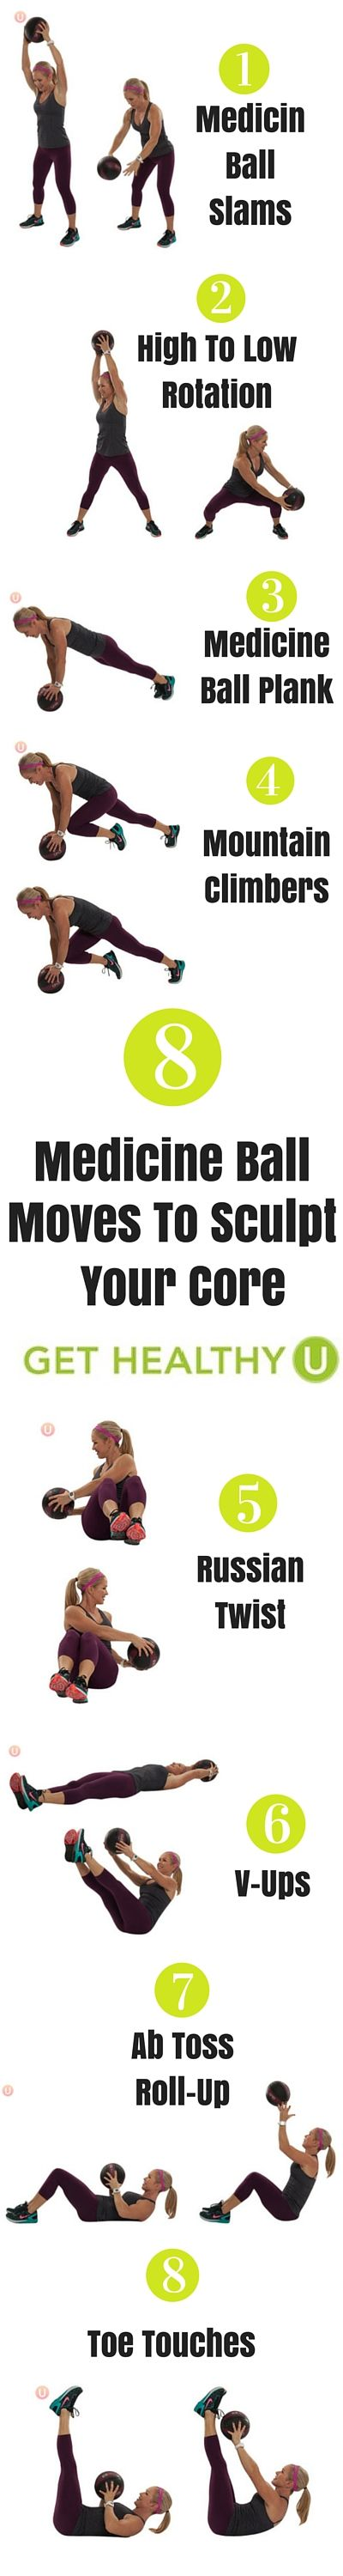 8 Medicine Ball Moves to Sculpt Your Core - Get Healthy U